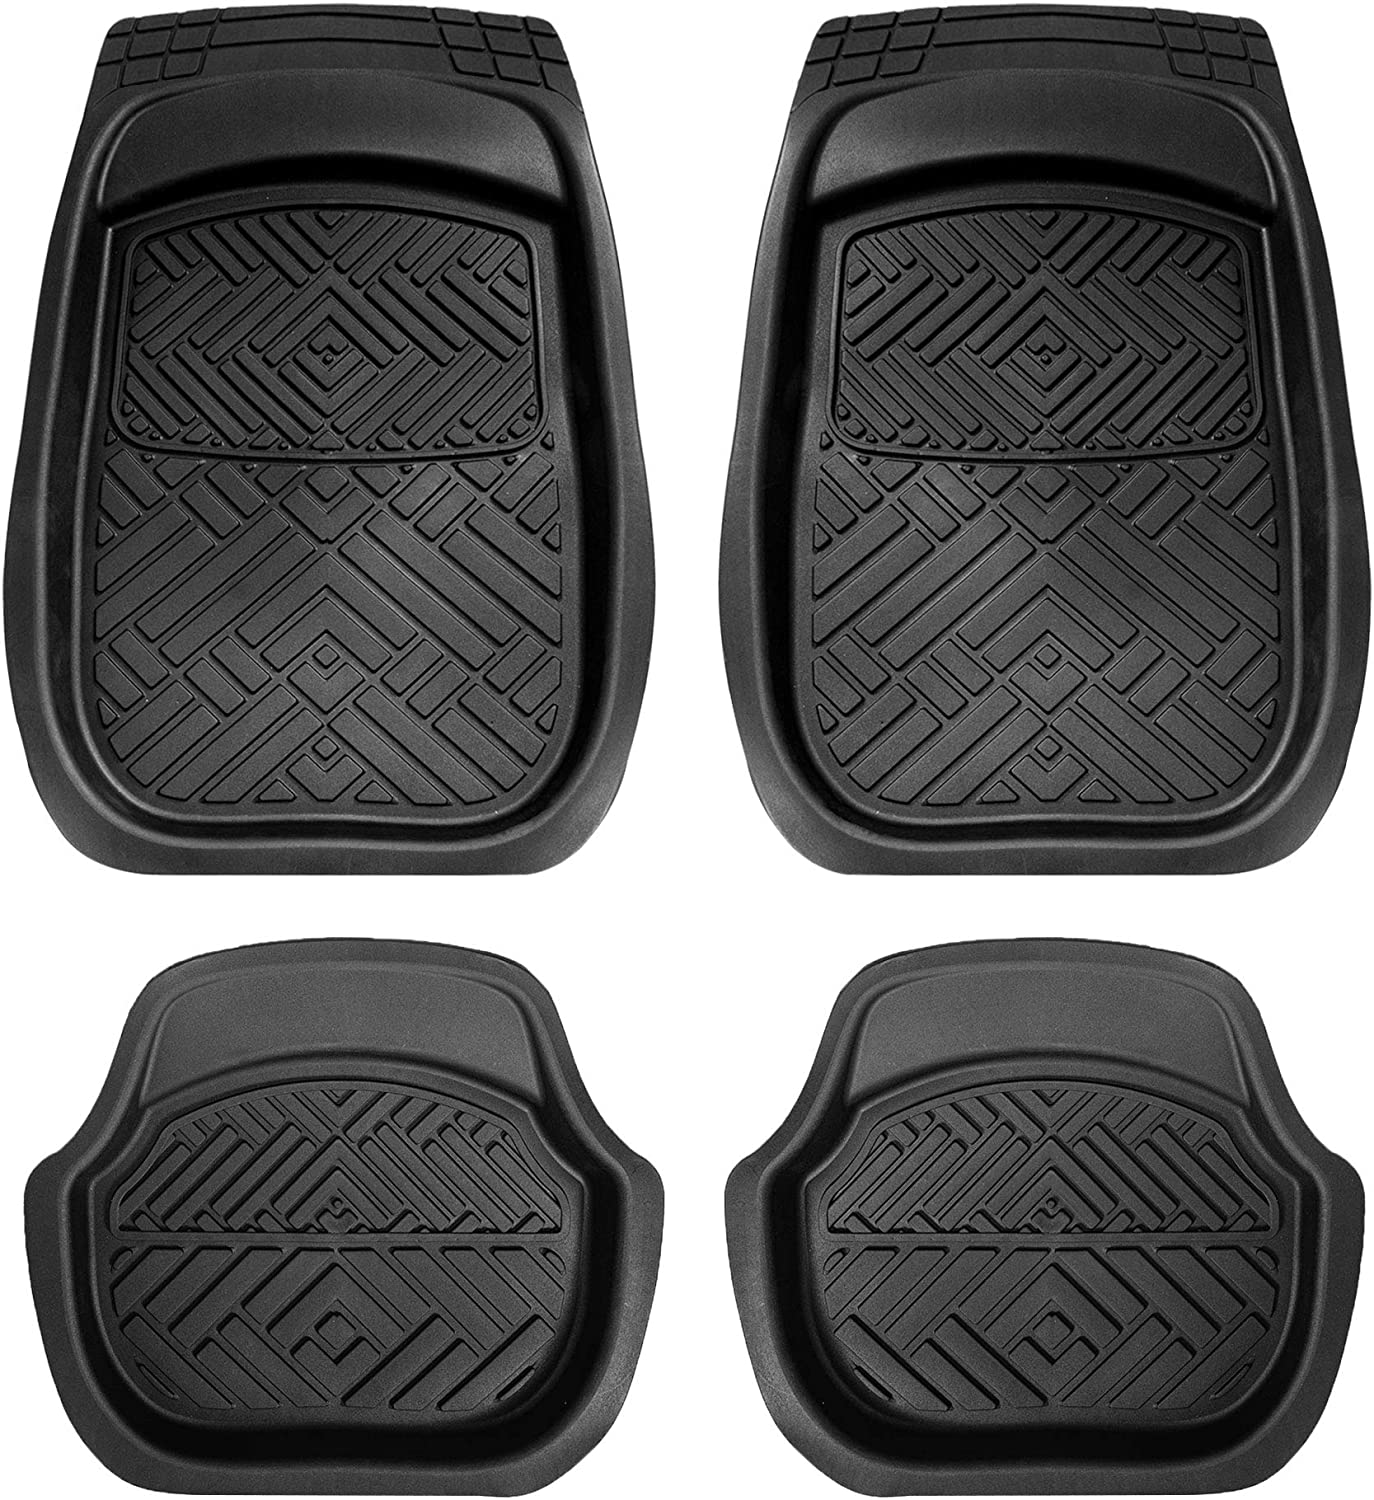 for Cars, Coupes, Small SUVs FH Group F13004BLACK Trimmable Liners Heavy Duty All-Season Car Floor Mats